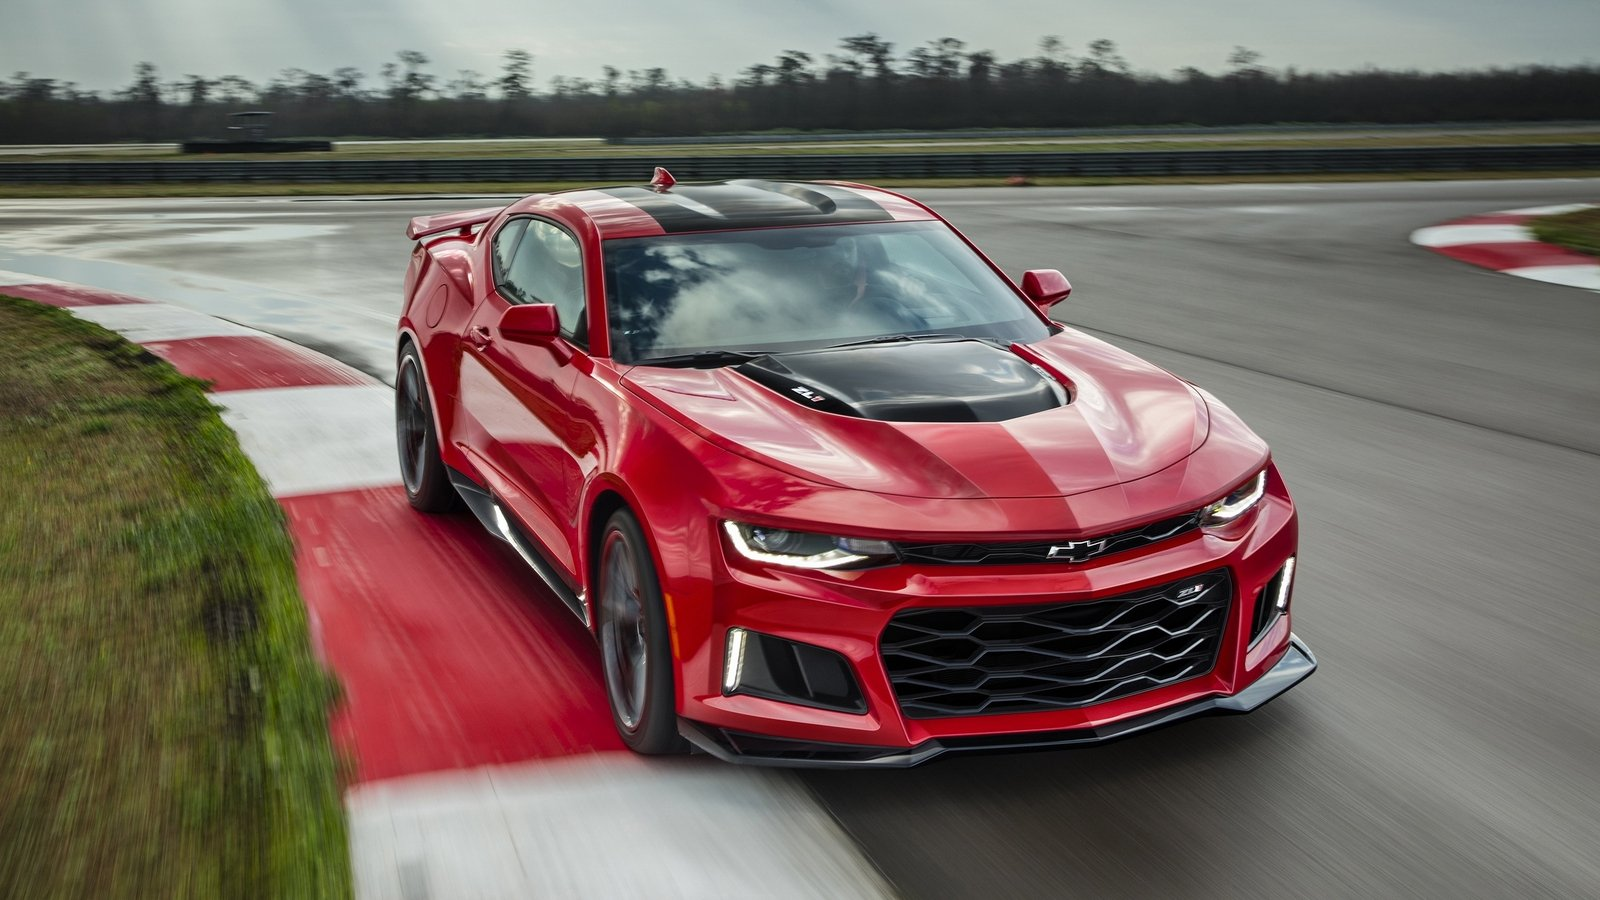 2017 Chevrolet Camaro Zl1 Top Speed